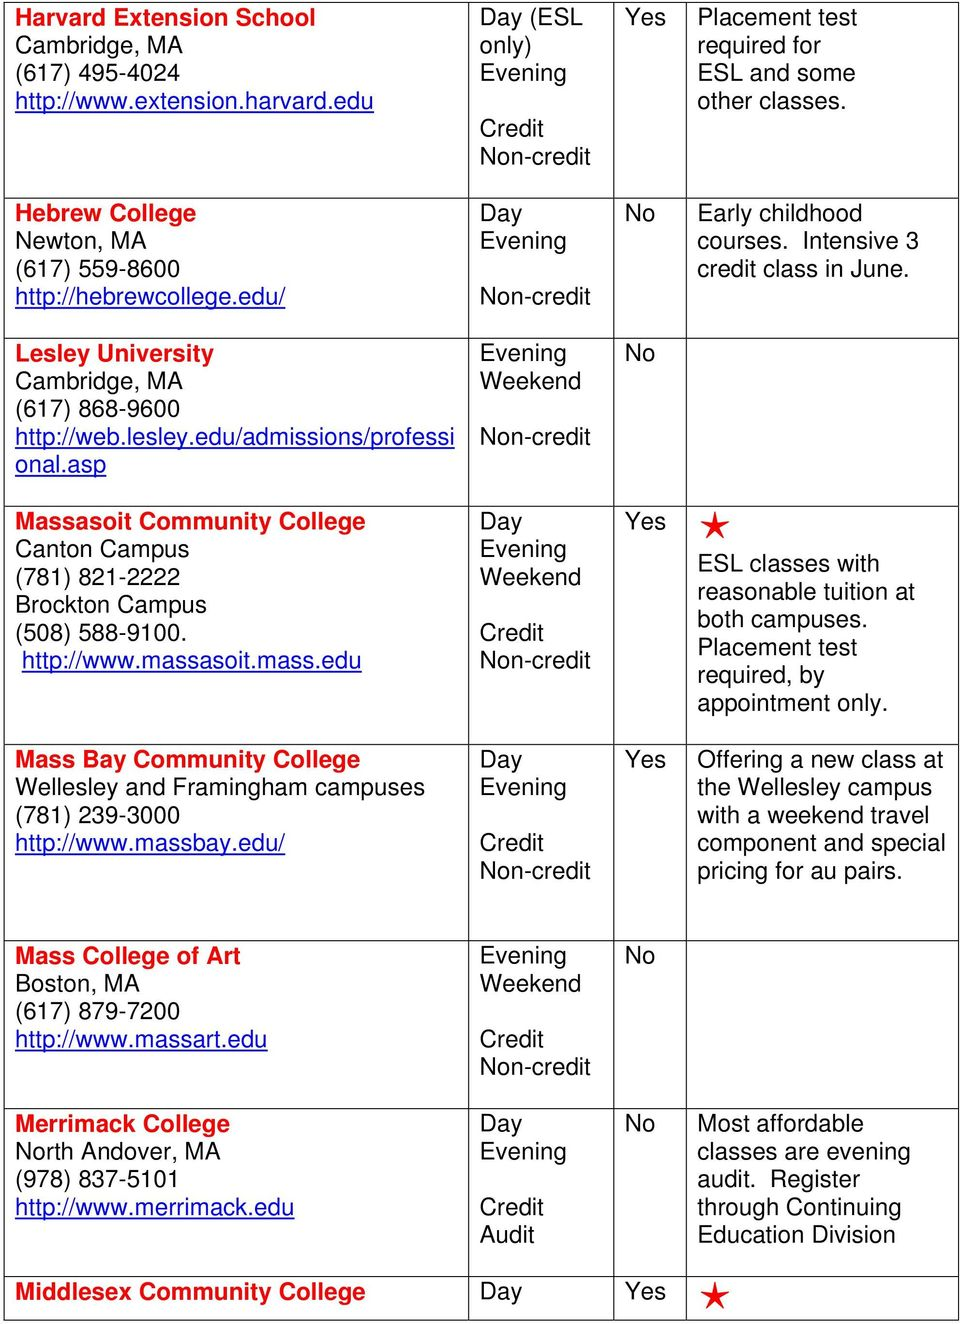 edu/admissions/professi onal.asp Massasoit Community College Canton Campus (781) 821-2222 Brockton Campus (508) 588-9100. http://www.massasoit.mass.edu ESL classes with reasonable tuition at both campuses.